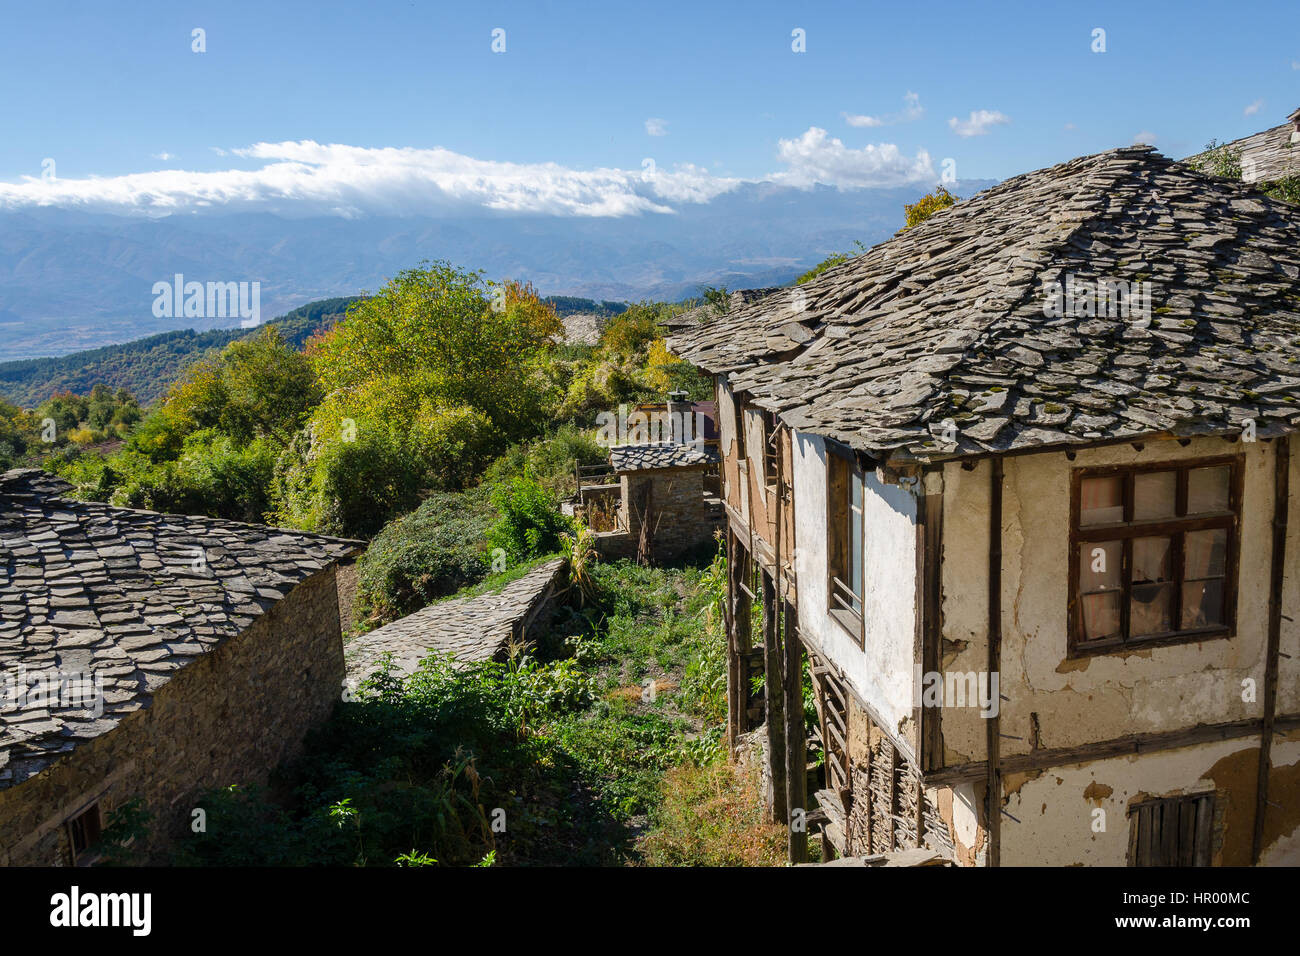 Old Traditional Houses With Slate Roofing Tiles In Leshten, Bulgaria